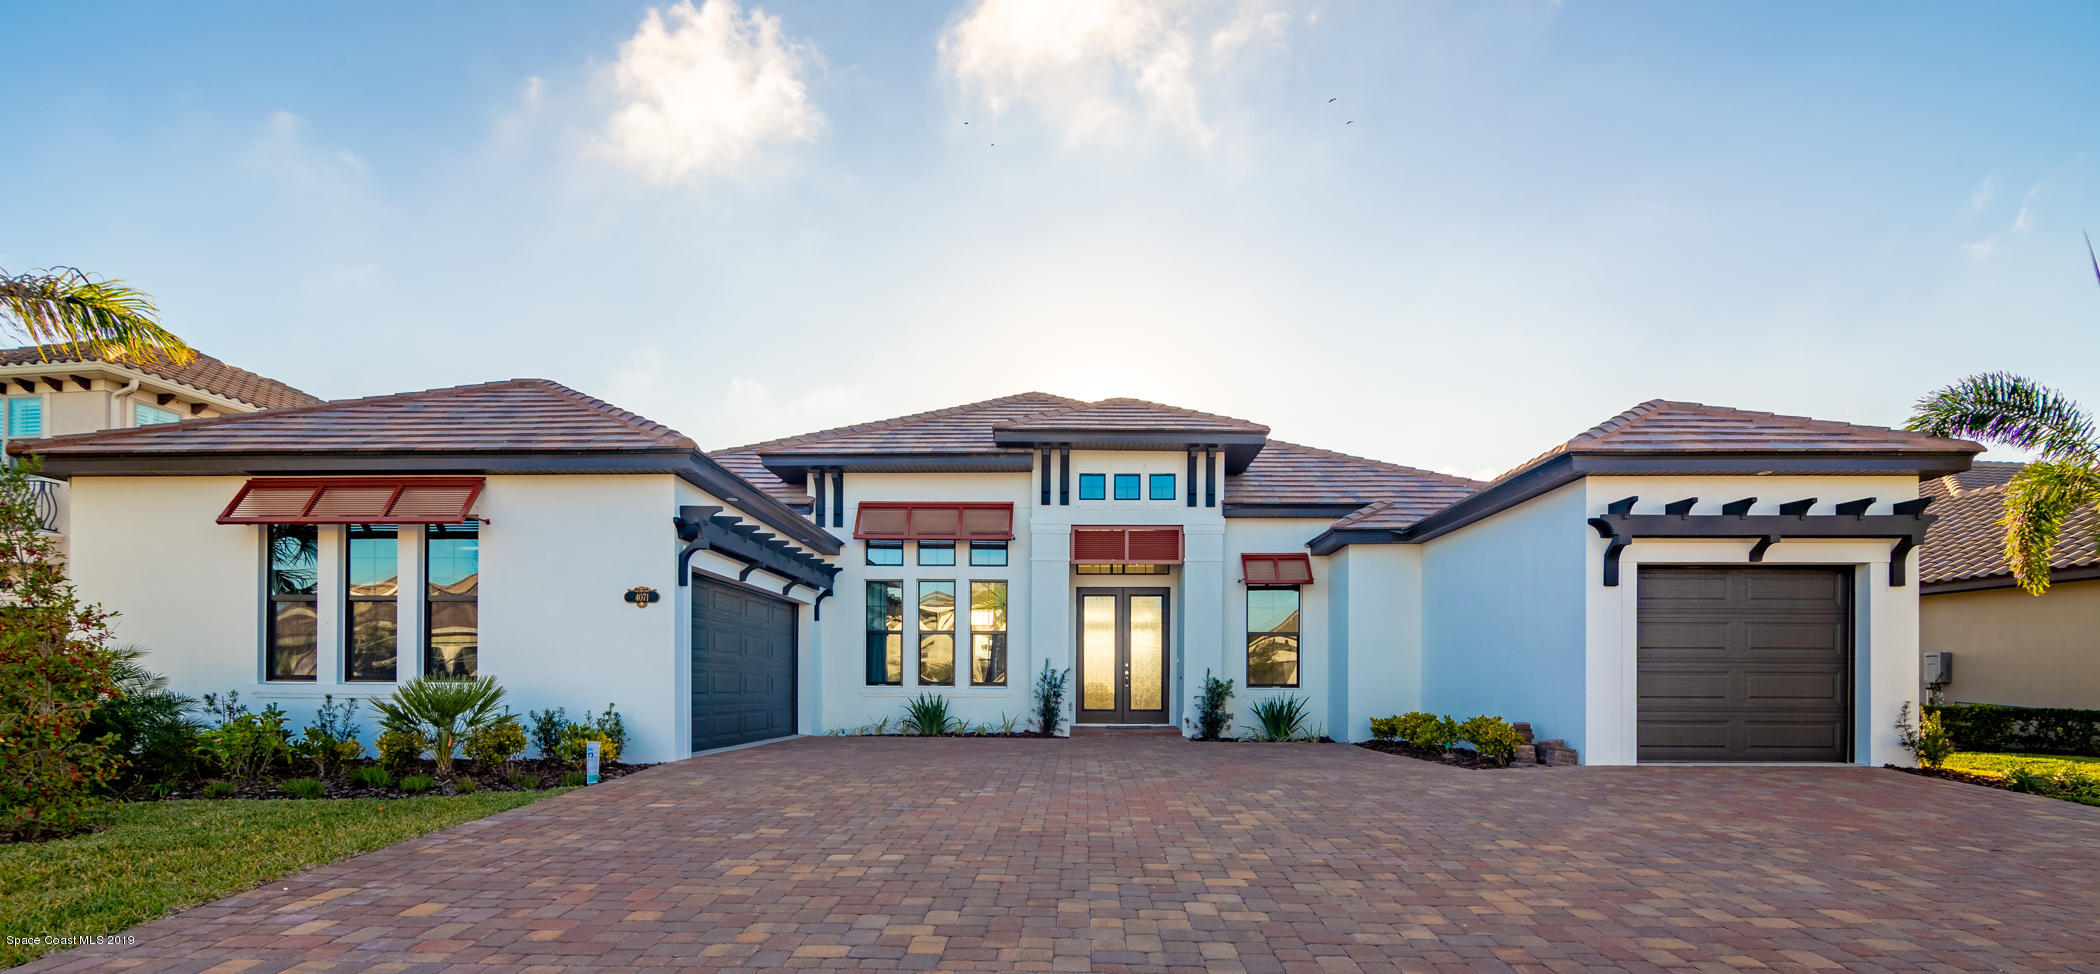 Single Family Home for Sale at 4071 Durksly Melbourne, Florida 32940 United States